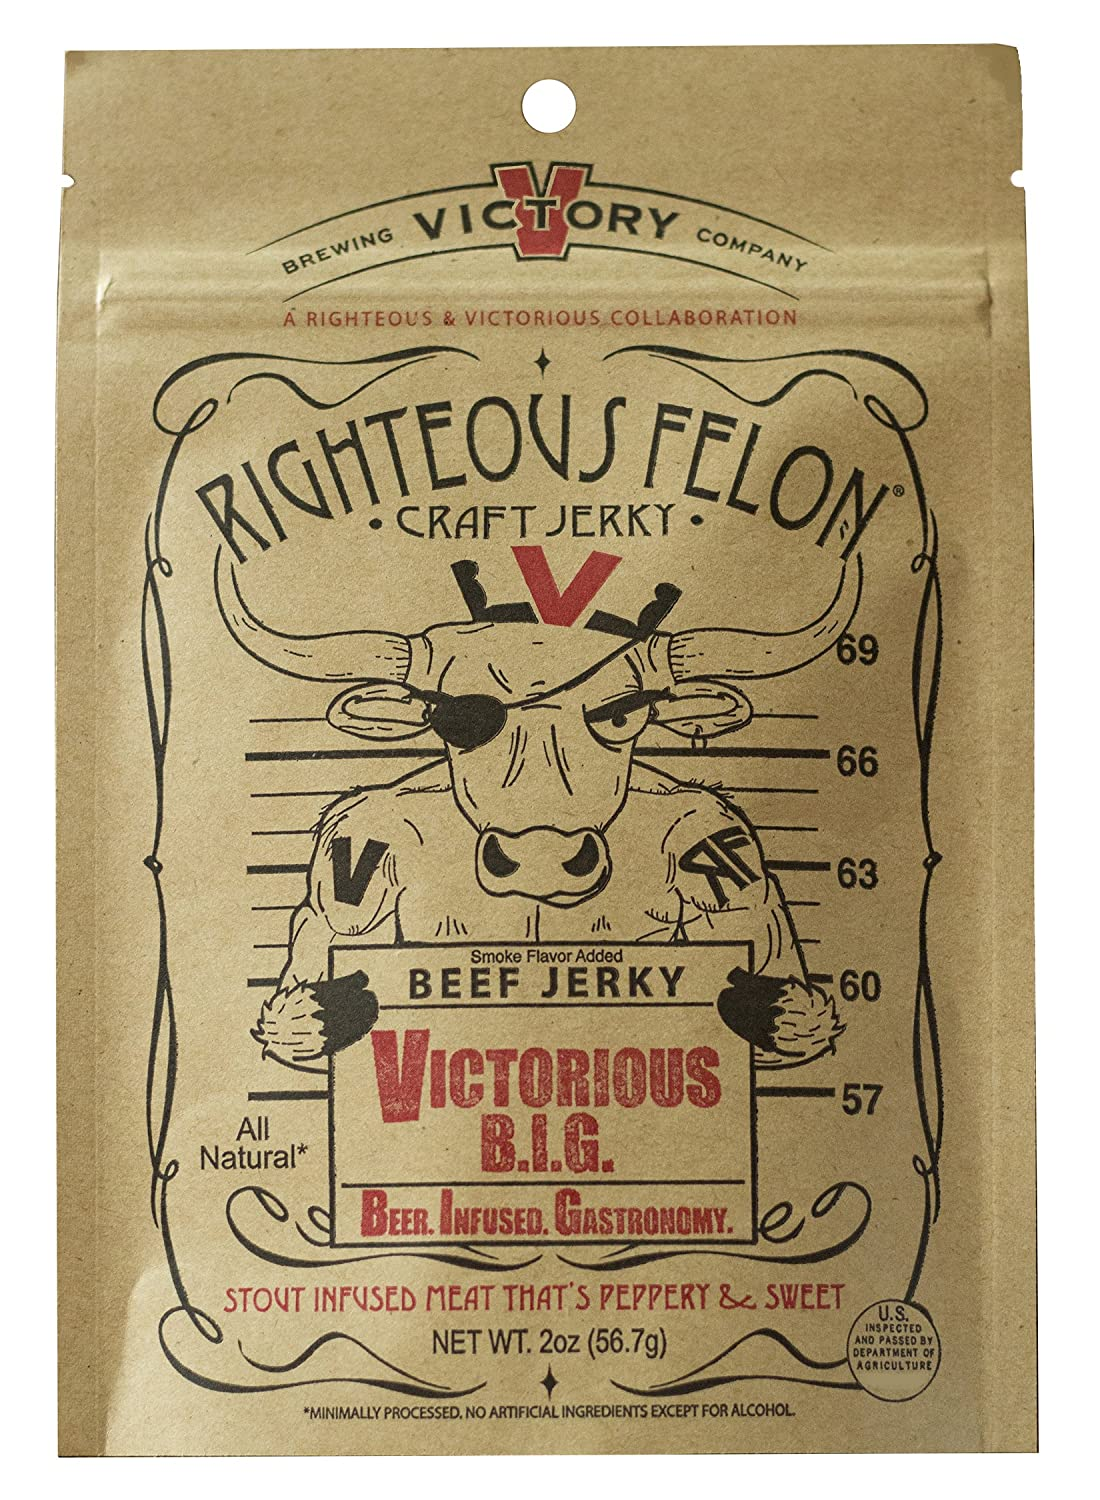 Righteous Felon Victorious BIG Beef Jerky